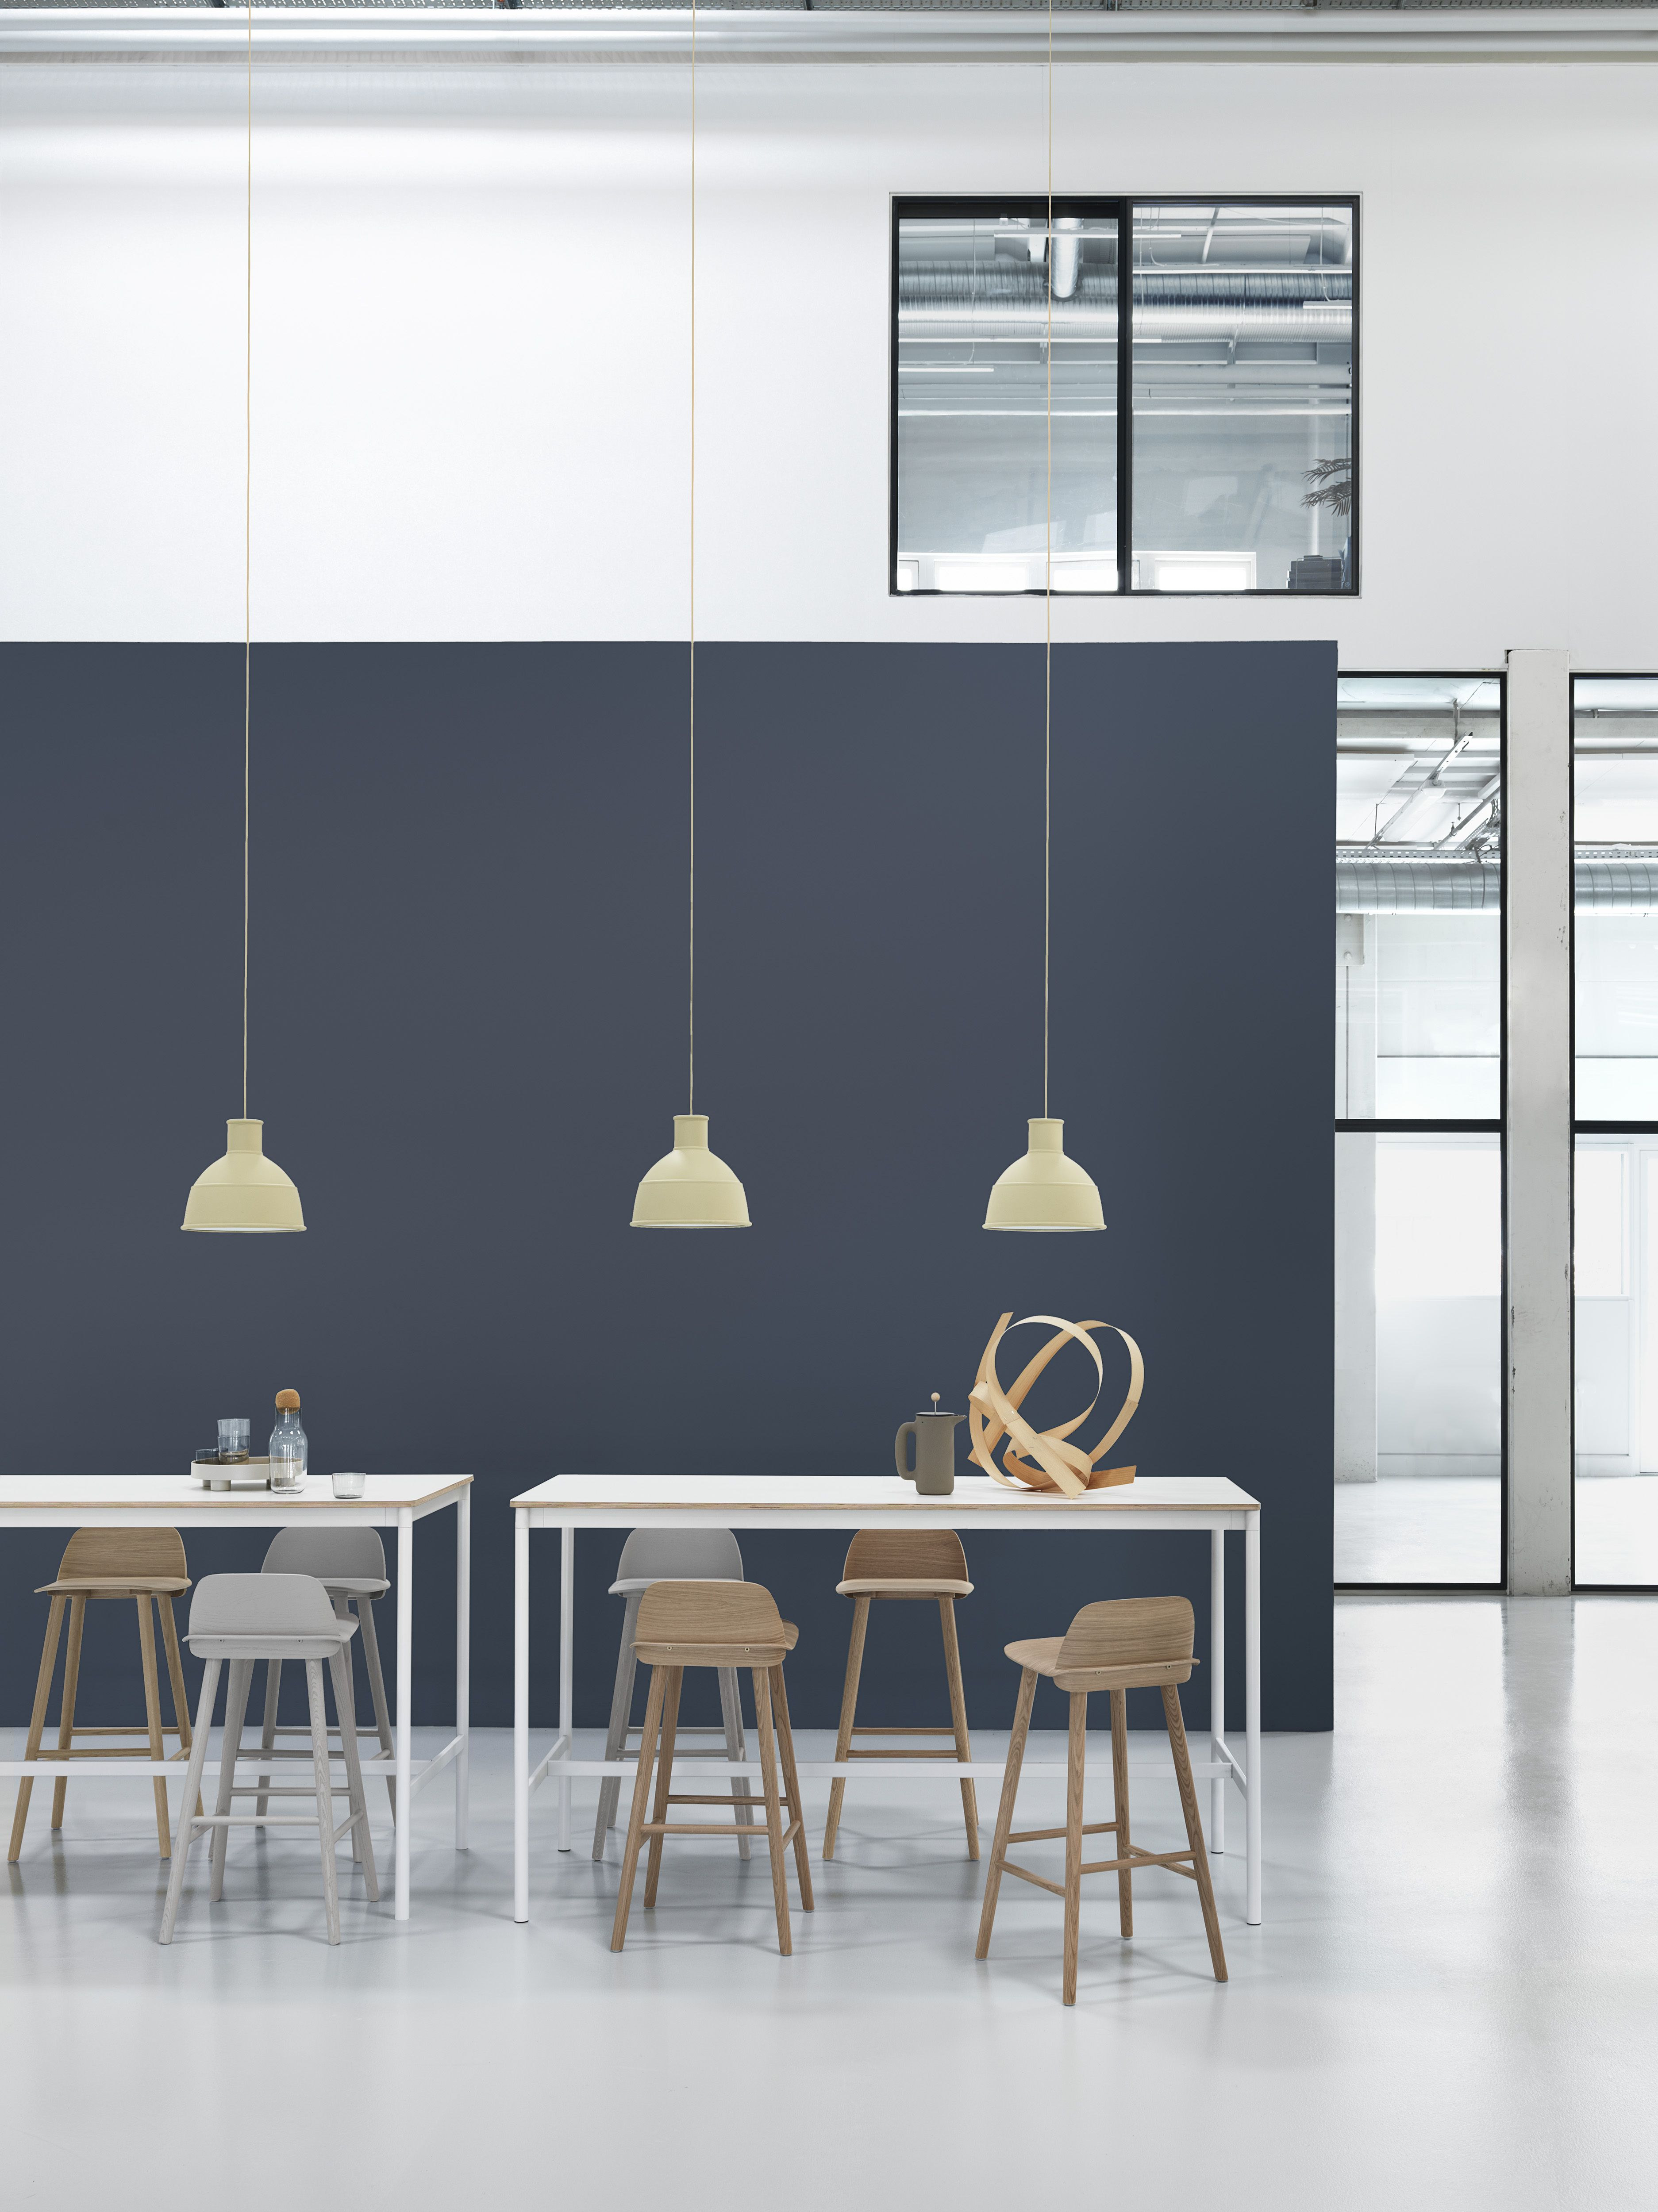 The unfold pendant lamp adds a new perspective to scandinavian the unfold pendant lamp adds a new perspective to scandinavian design by bringing a splash of mozeypictures Choice Image